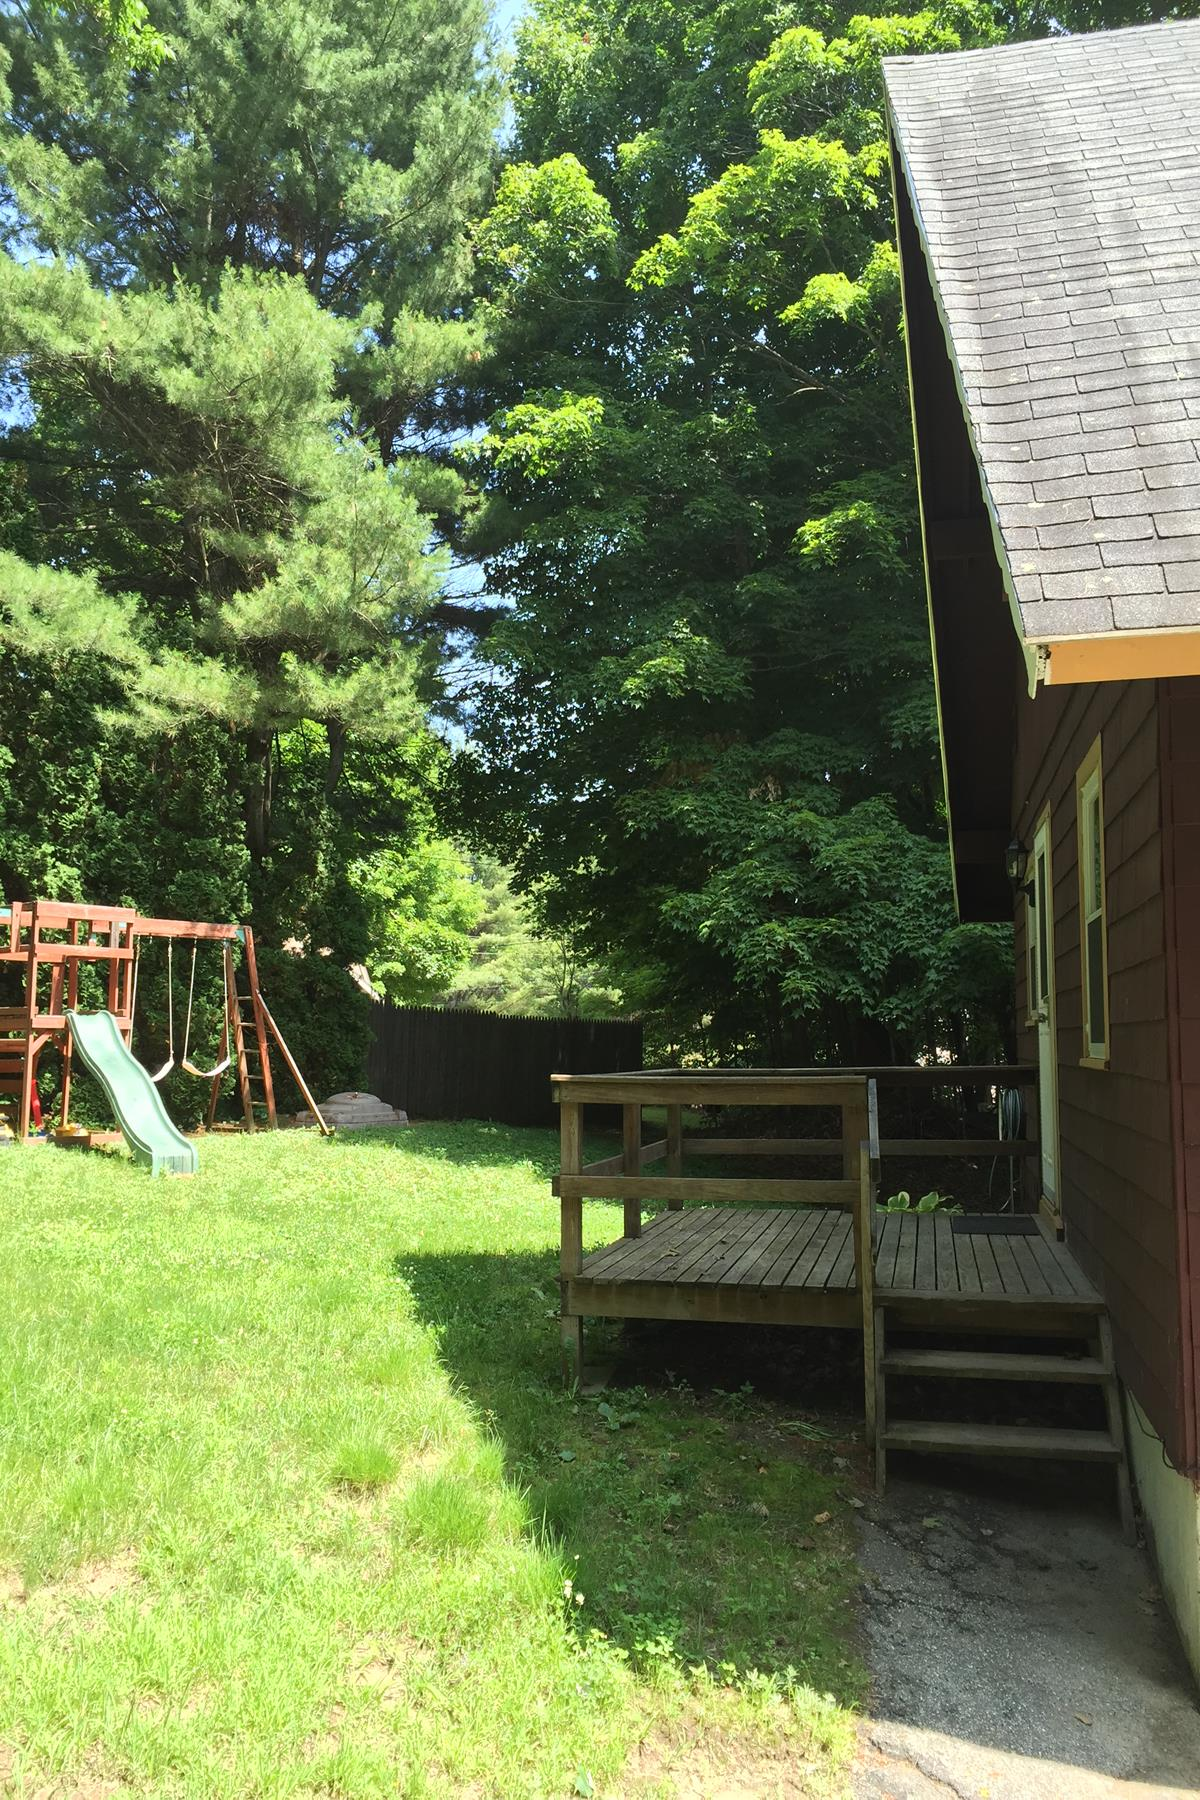 Single Family Home for Sale at 10 Perry Court Ct, Newbury Newbury, New Hampshire 03255 United States